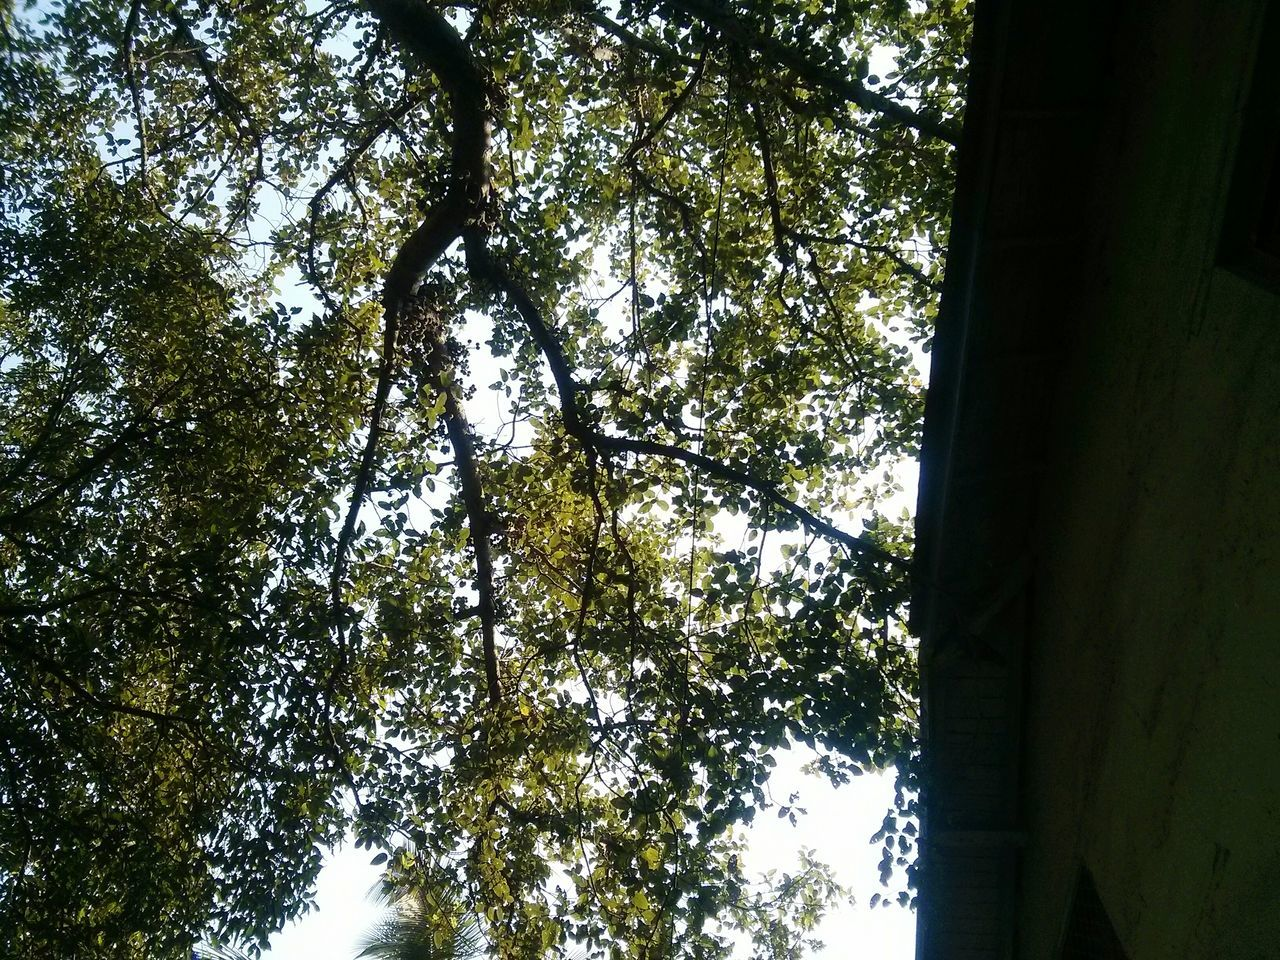 tree, low angle view, growth, day, nature, forest, tree trunk, branch, no people, outdoors, beauty in nature, sky